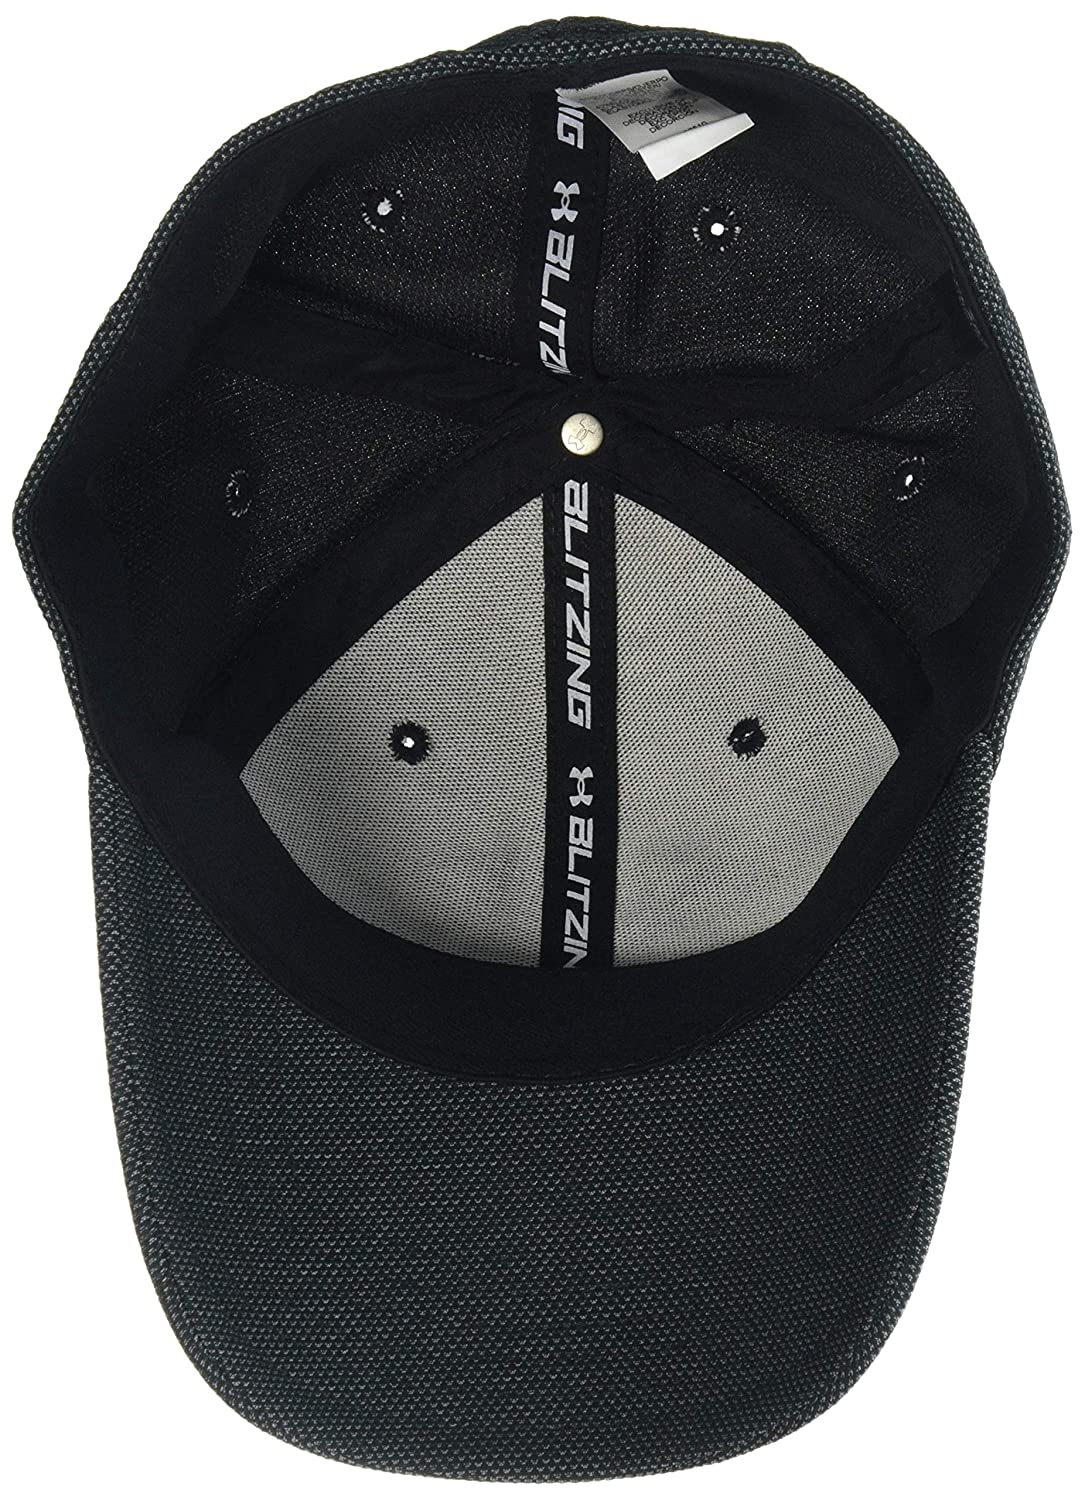 detailed look 44848 ca53d Amazon.com  Under Armour Men s Heathered Blitzing 3.0 Cap  Clothing